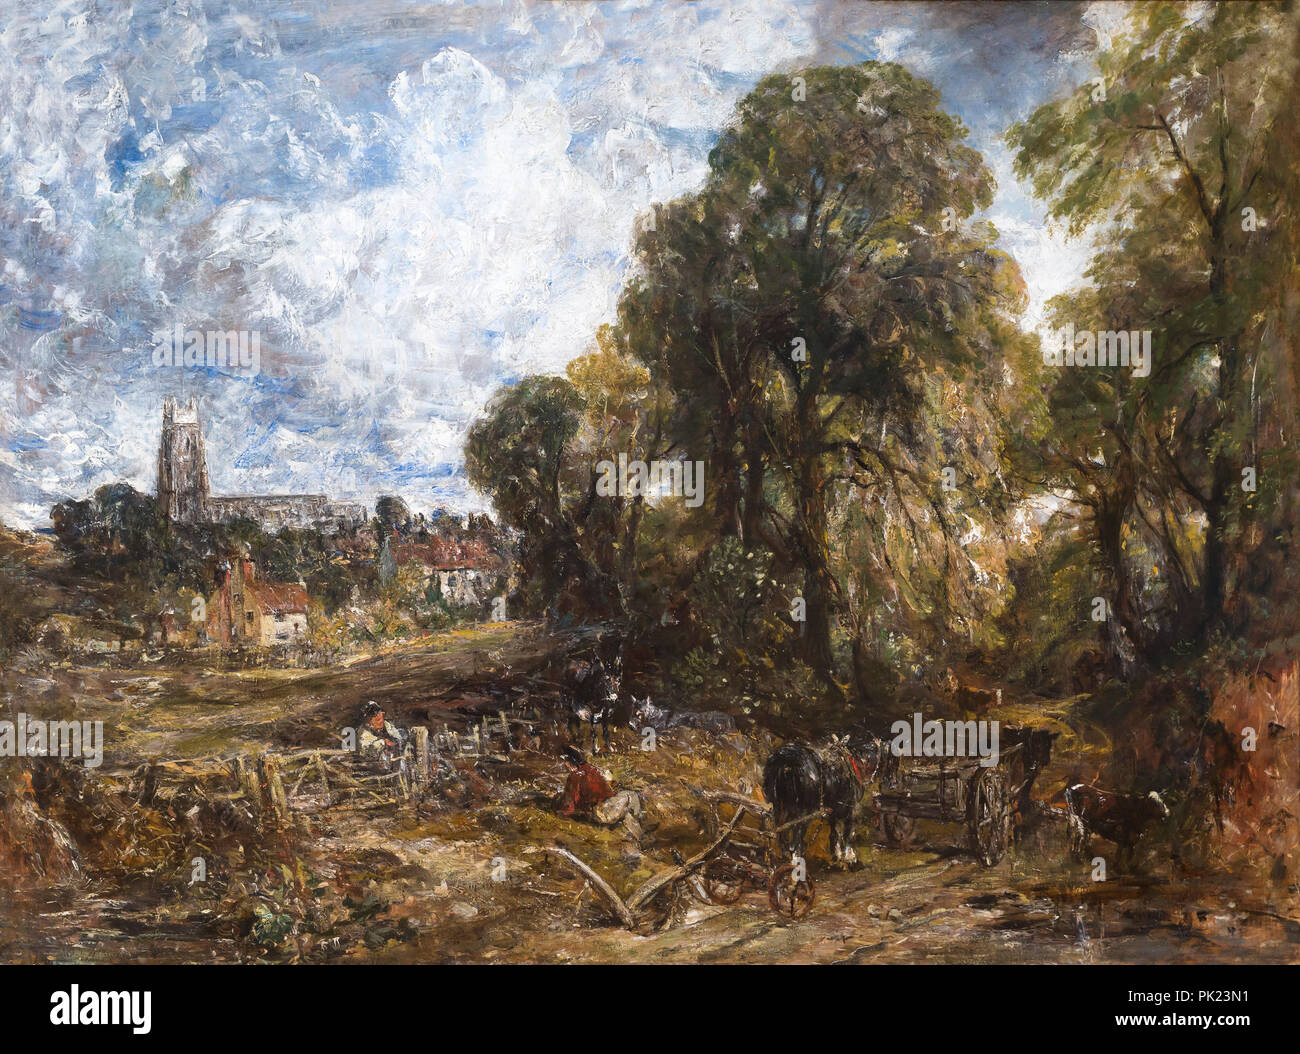 Stoke-by-Nayland, John Constable, 1836, Art Institute of Chicago, Chicago, Illinois, USA, North America, - Stock Image